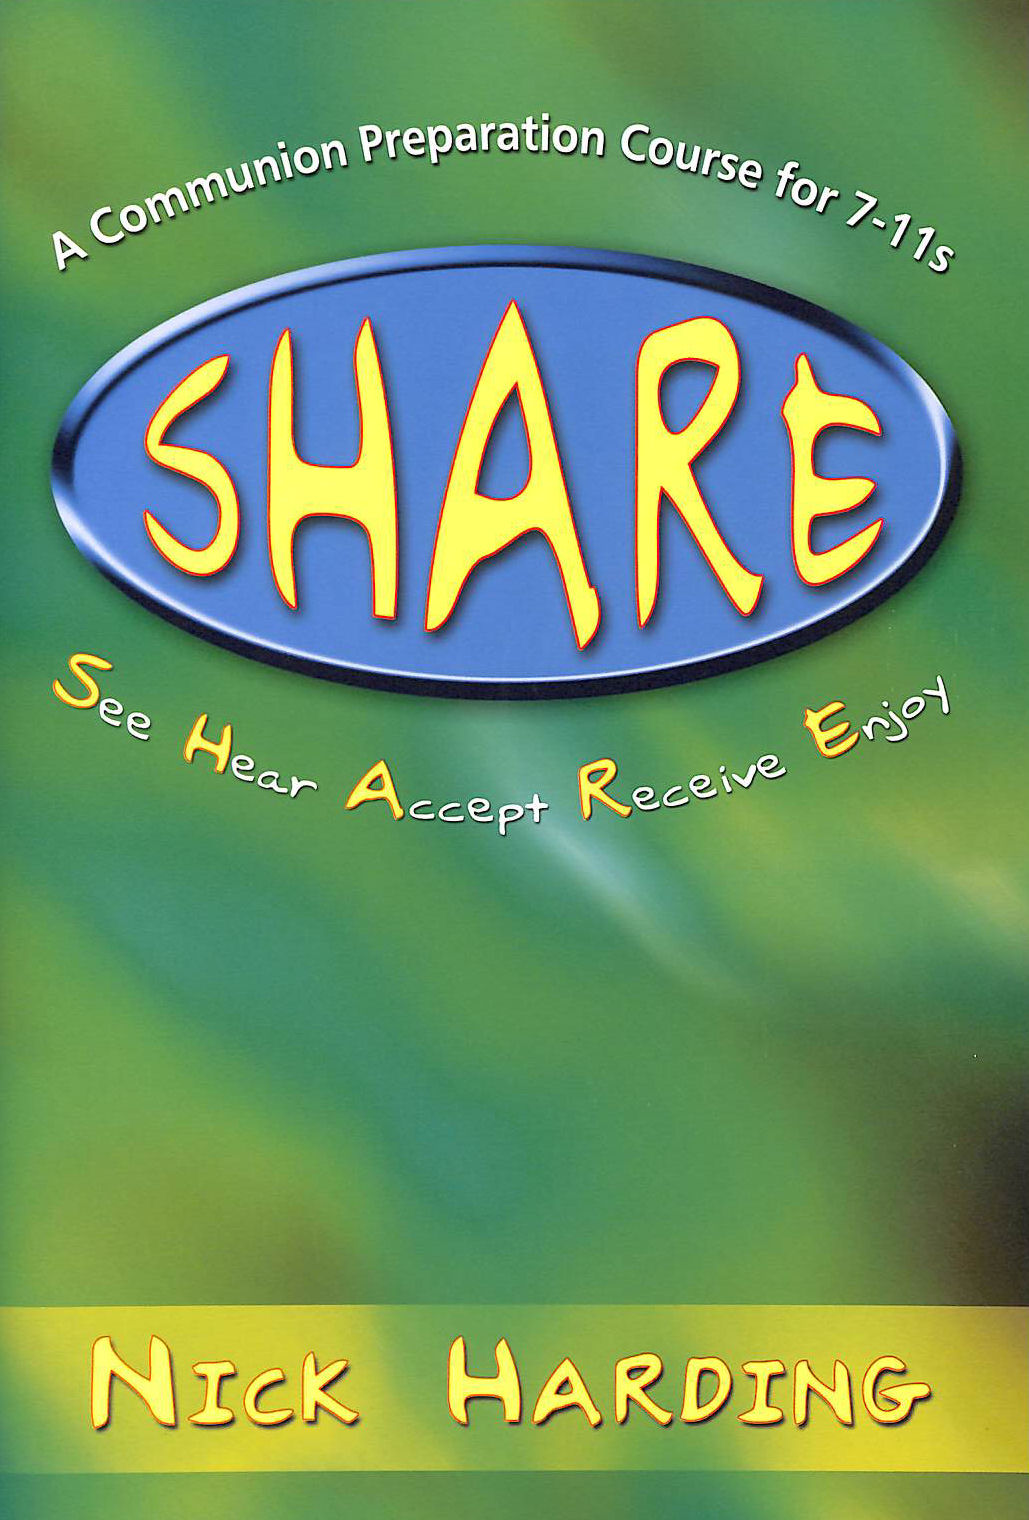 Image for Share: A Communion Preparation Course for 7-11s